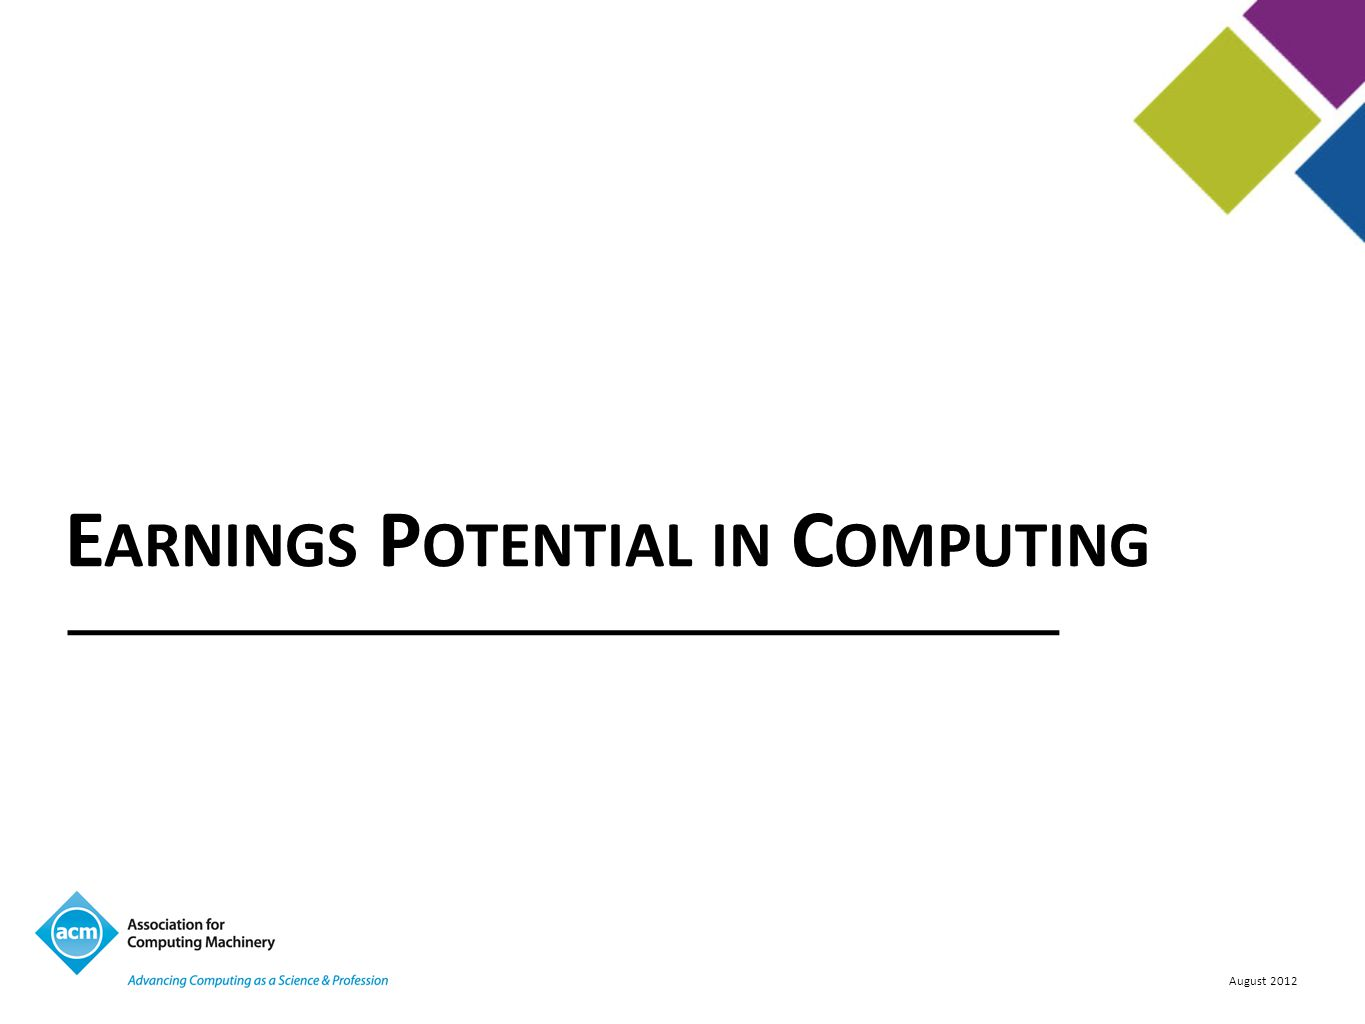 Earnings Potential in Computing